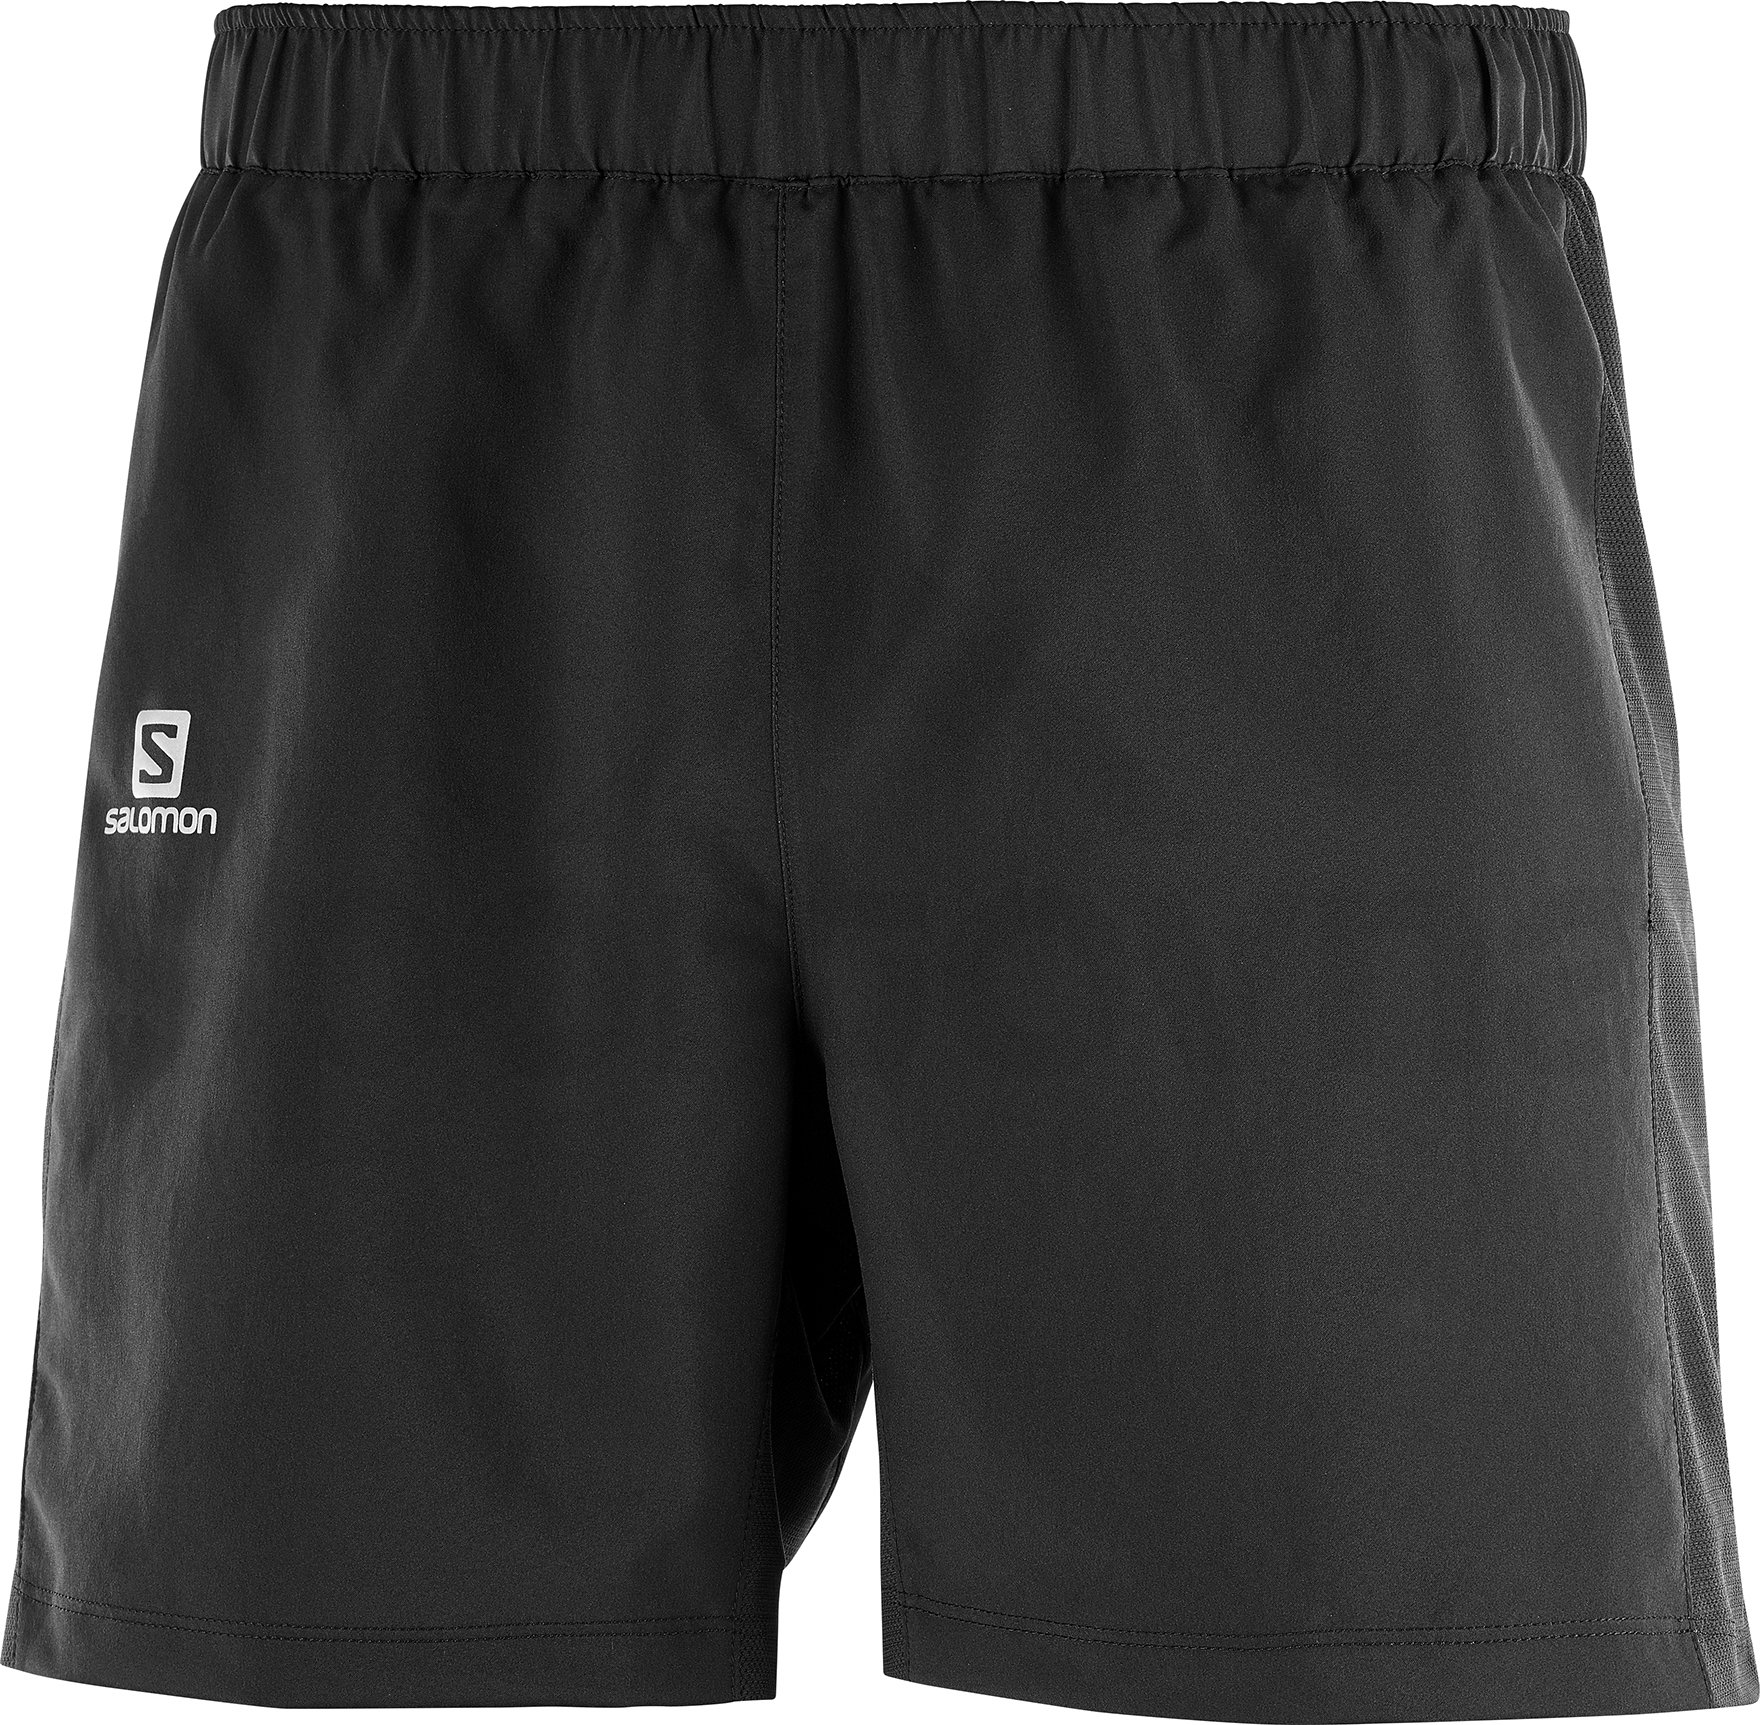 L40120100_0_m_agile5short_black_running.jpg.originalg